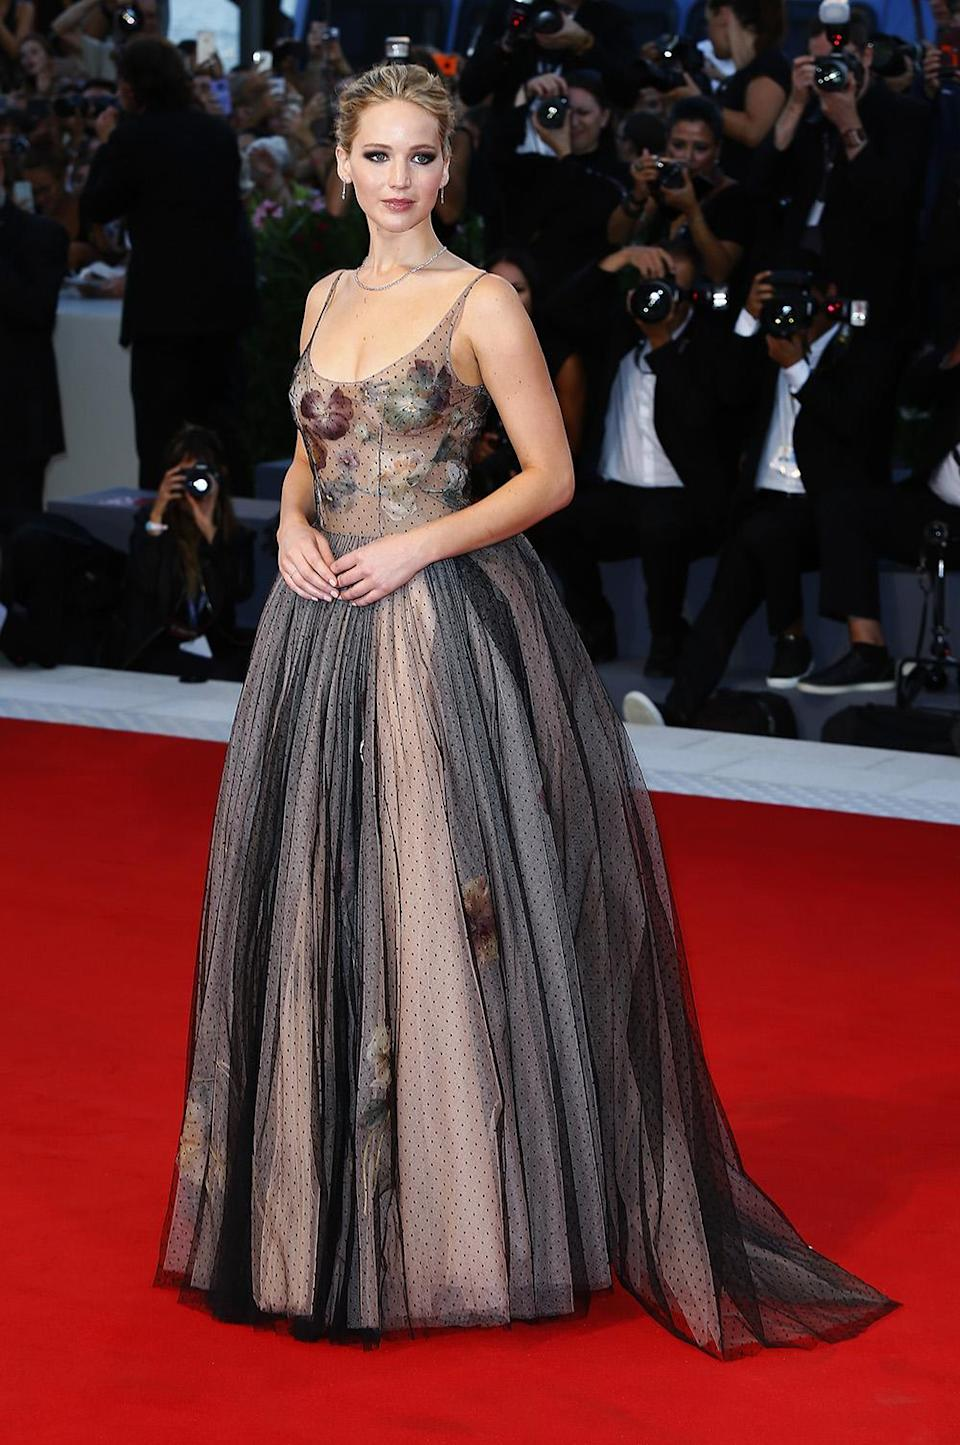 She stunned that same night in a Dior gown. (Photo by Ernesto Ruscio/Getty Images)